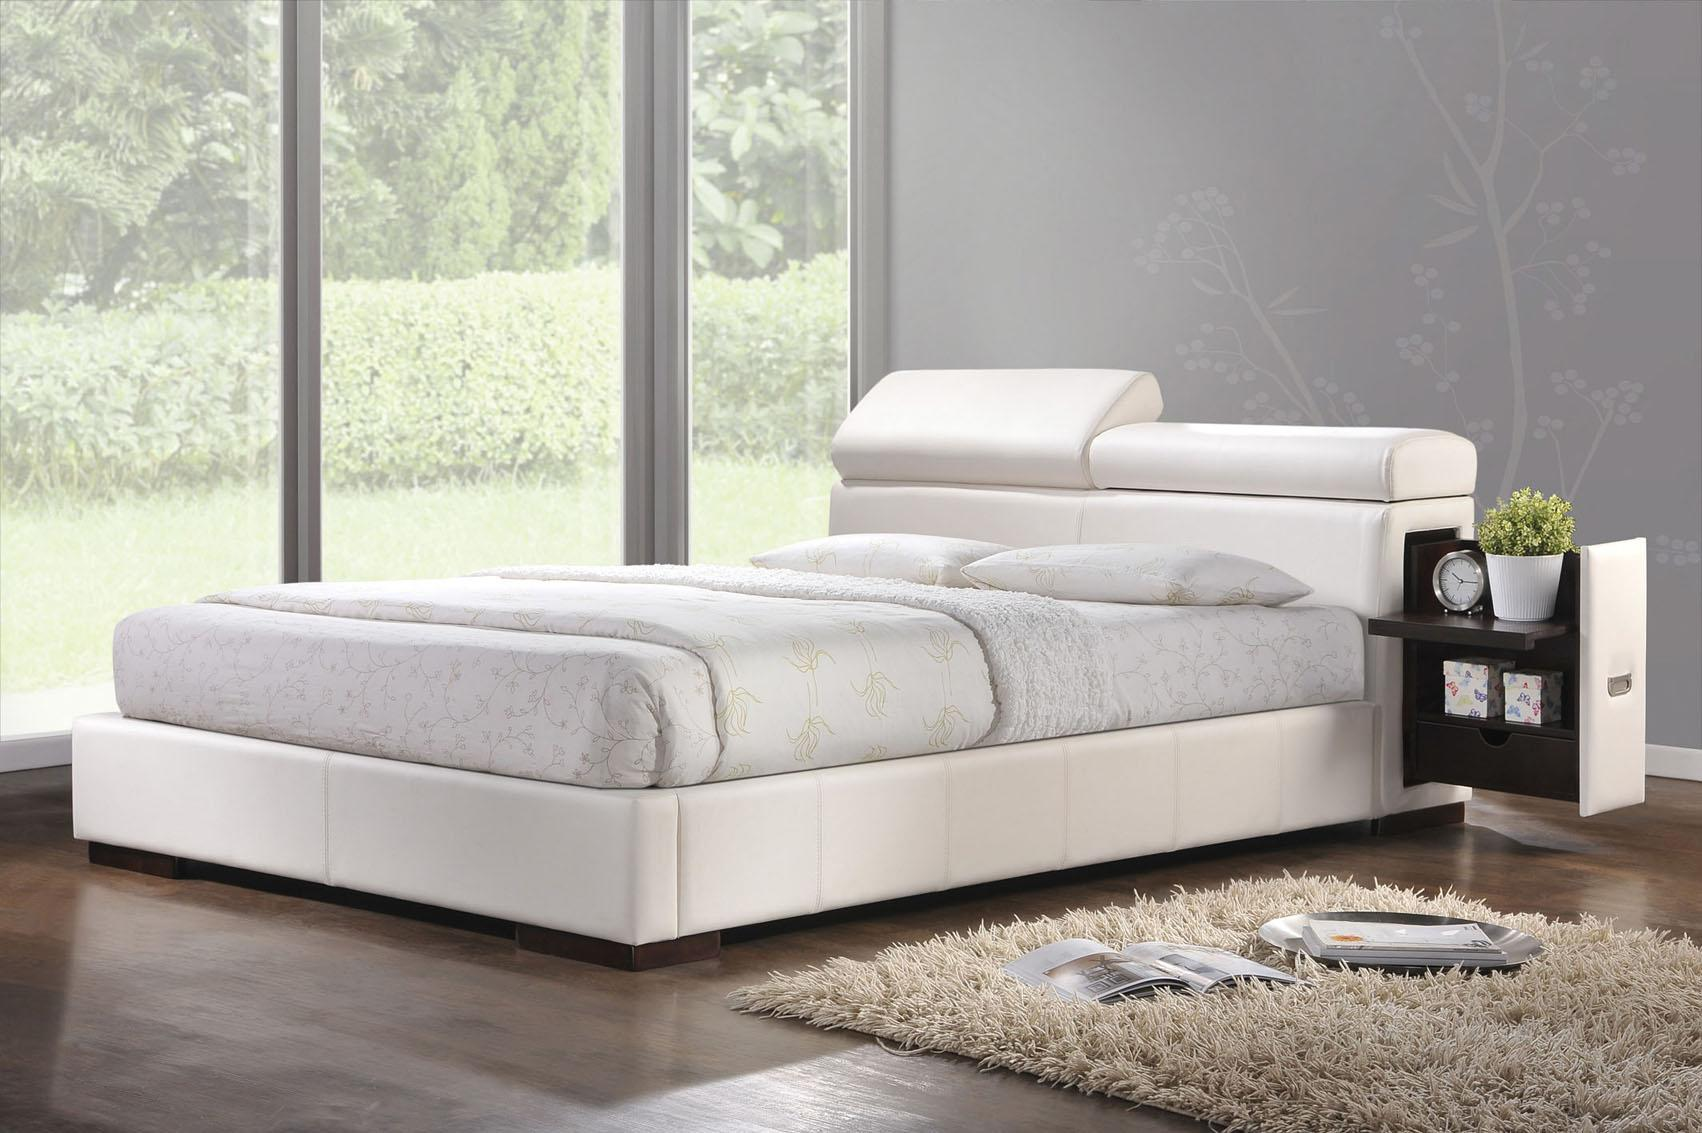 Acme Furniture Manjot Cal King Bed - Item Number: 20414CK